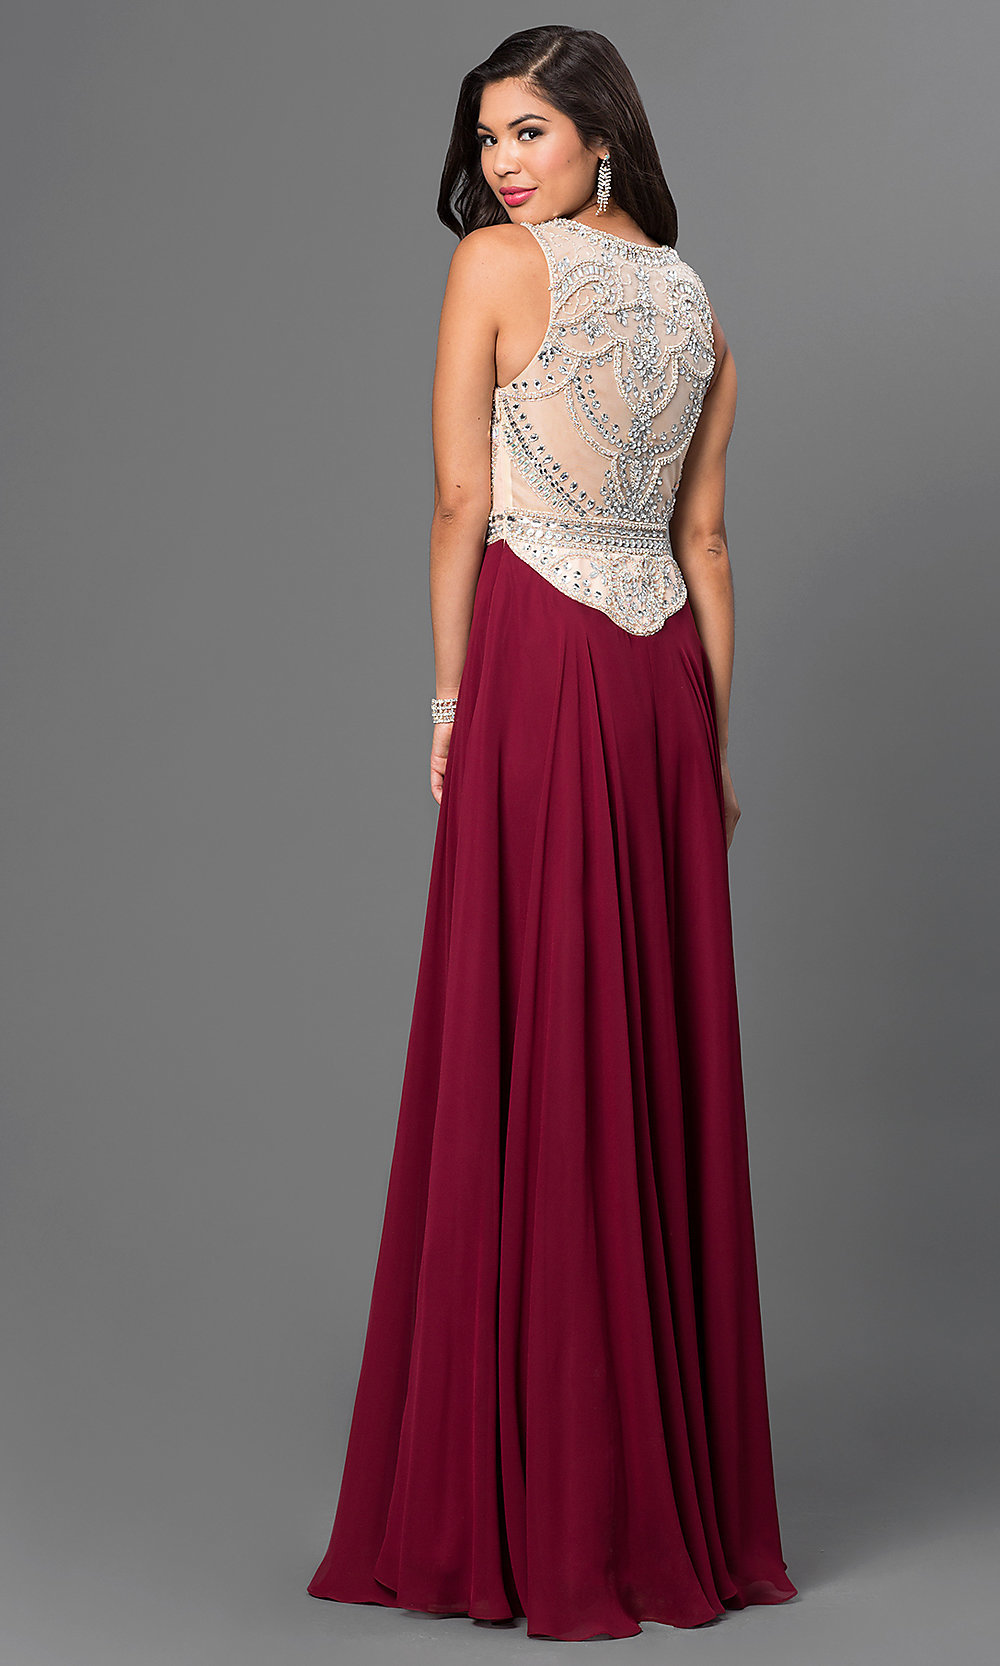 Wedding Burgundy Prom Dress burgundy red beaded long prom dress promgirl hover to zoom